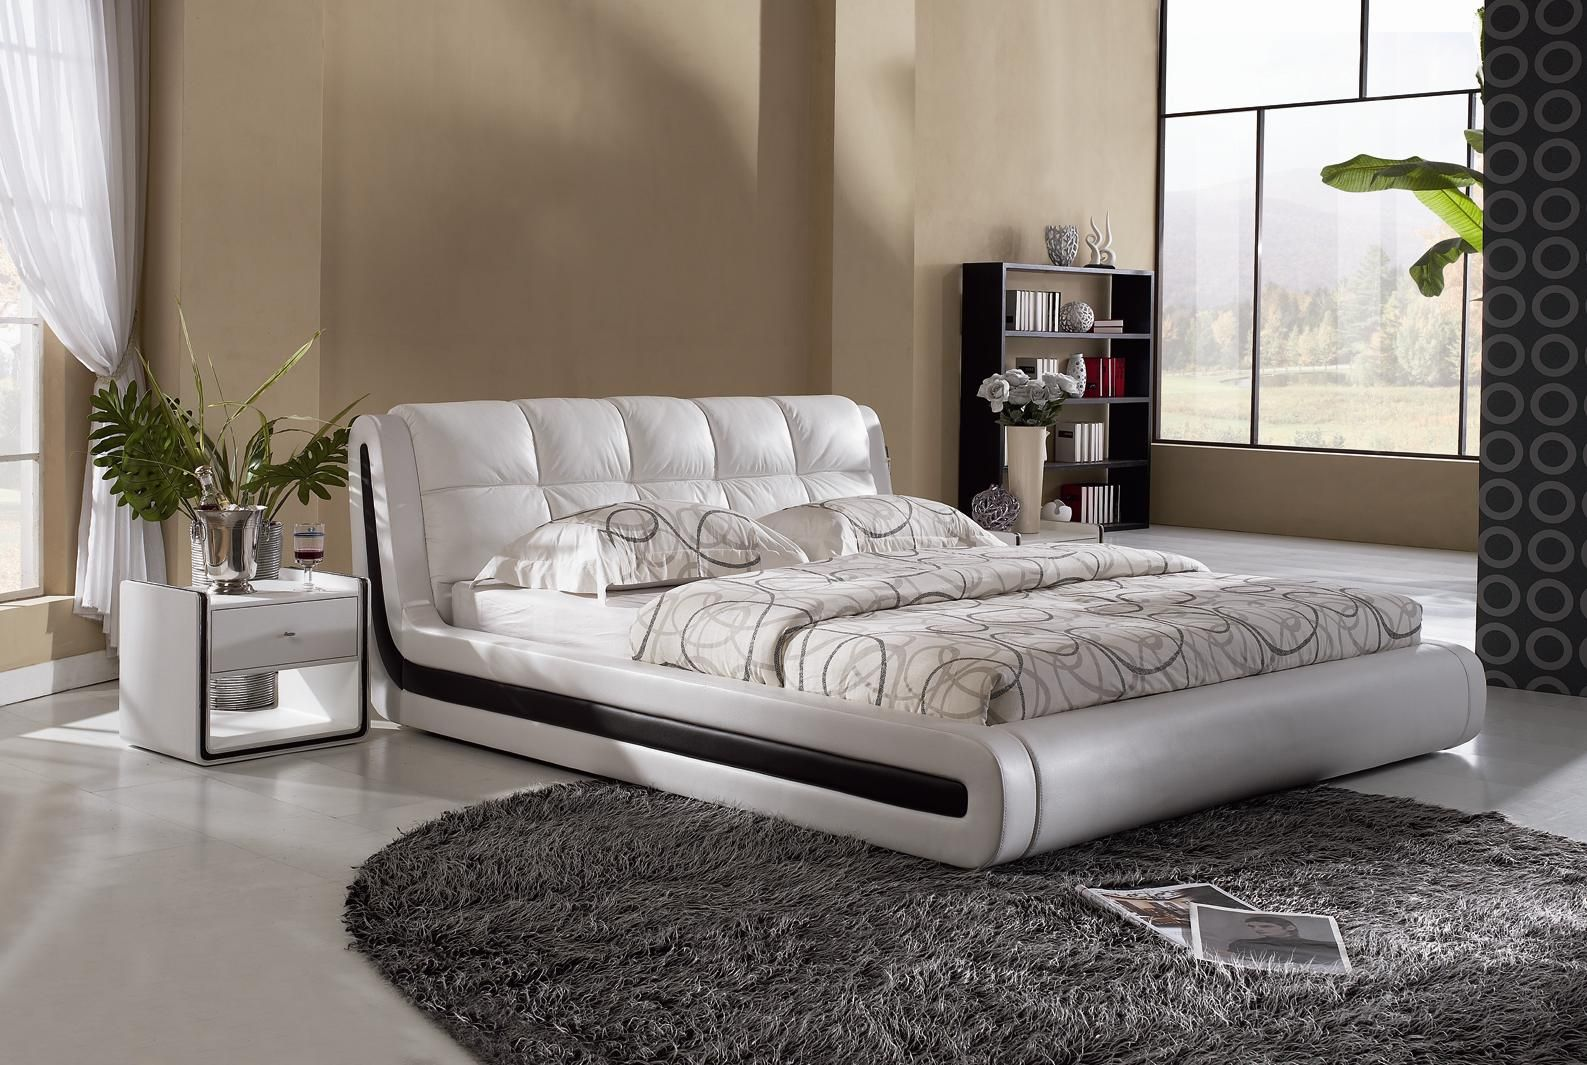 Modern bed designs home interior designer adult bedroom for Bed interior design picture